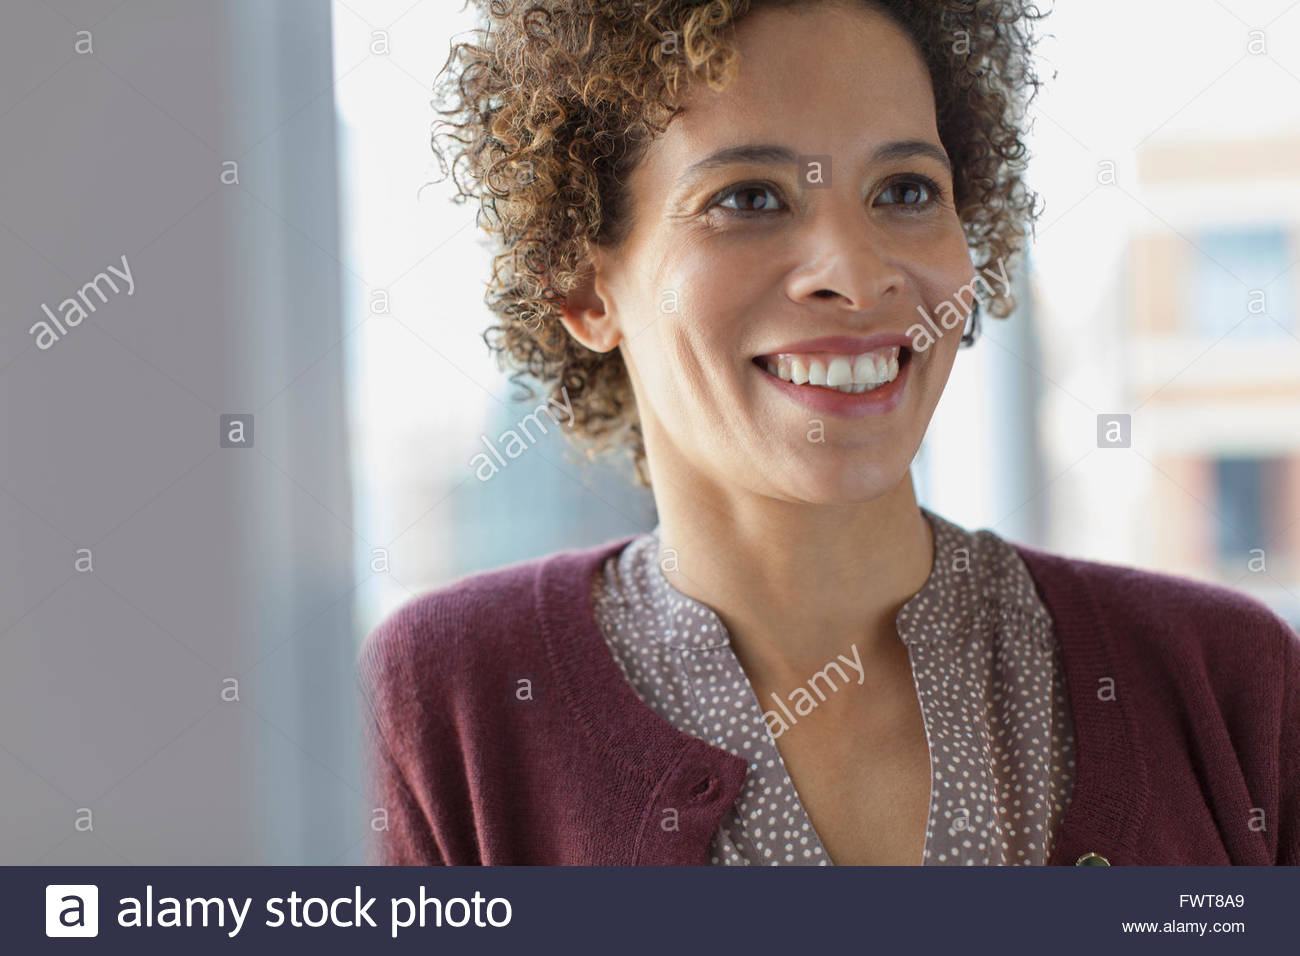 Businesswoman smiling at office. - Stock Image